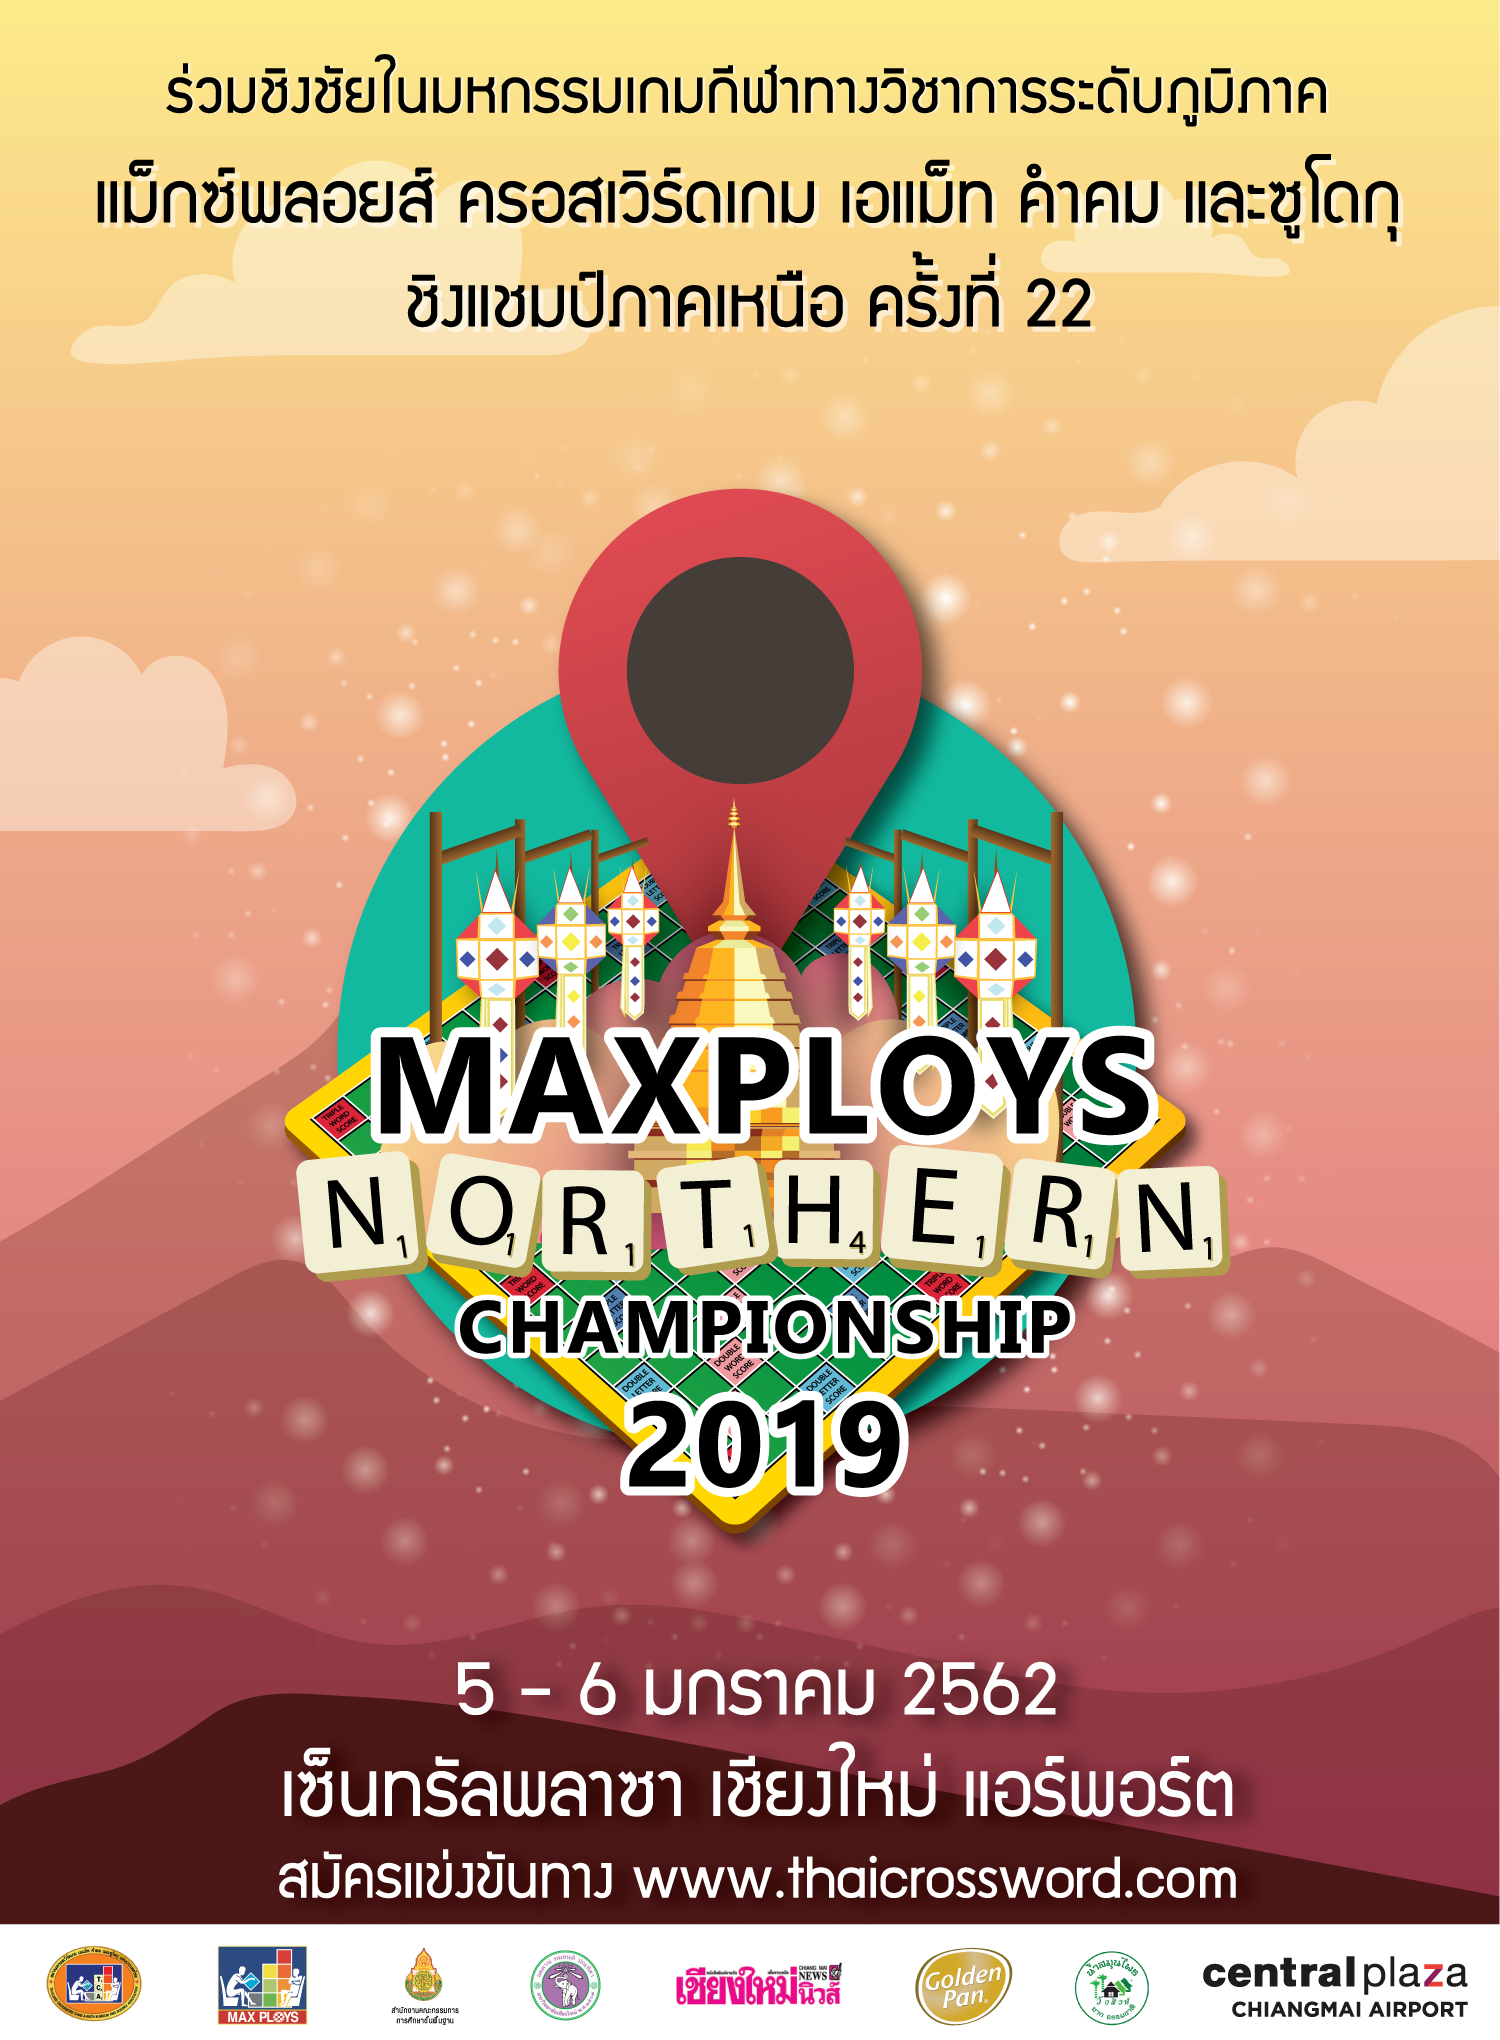 Maxploys Northern Championship 2019